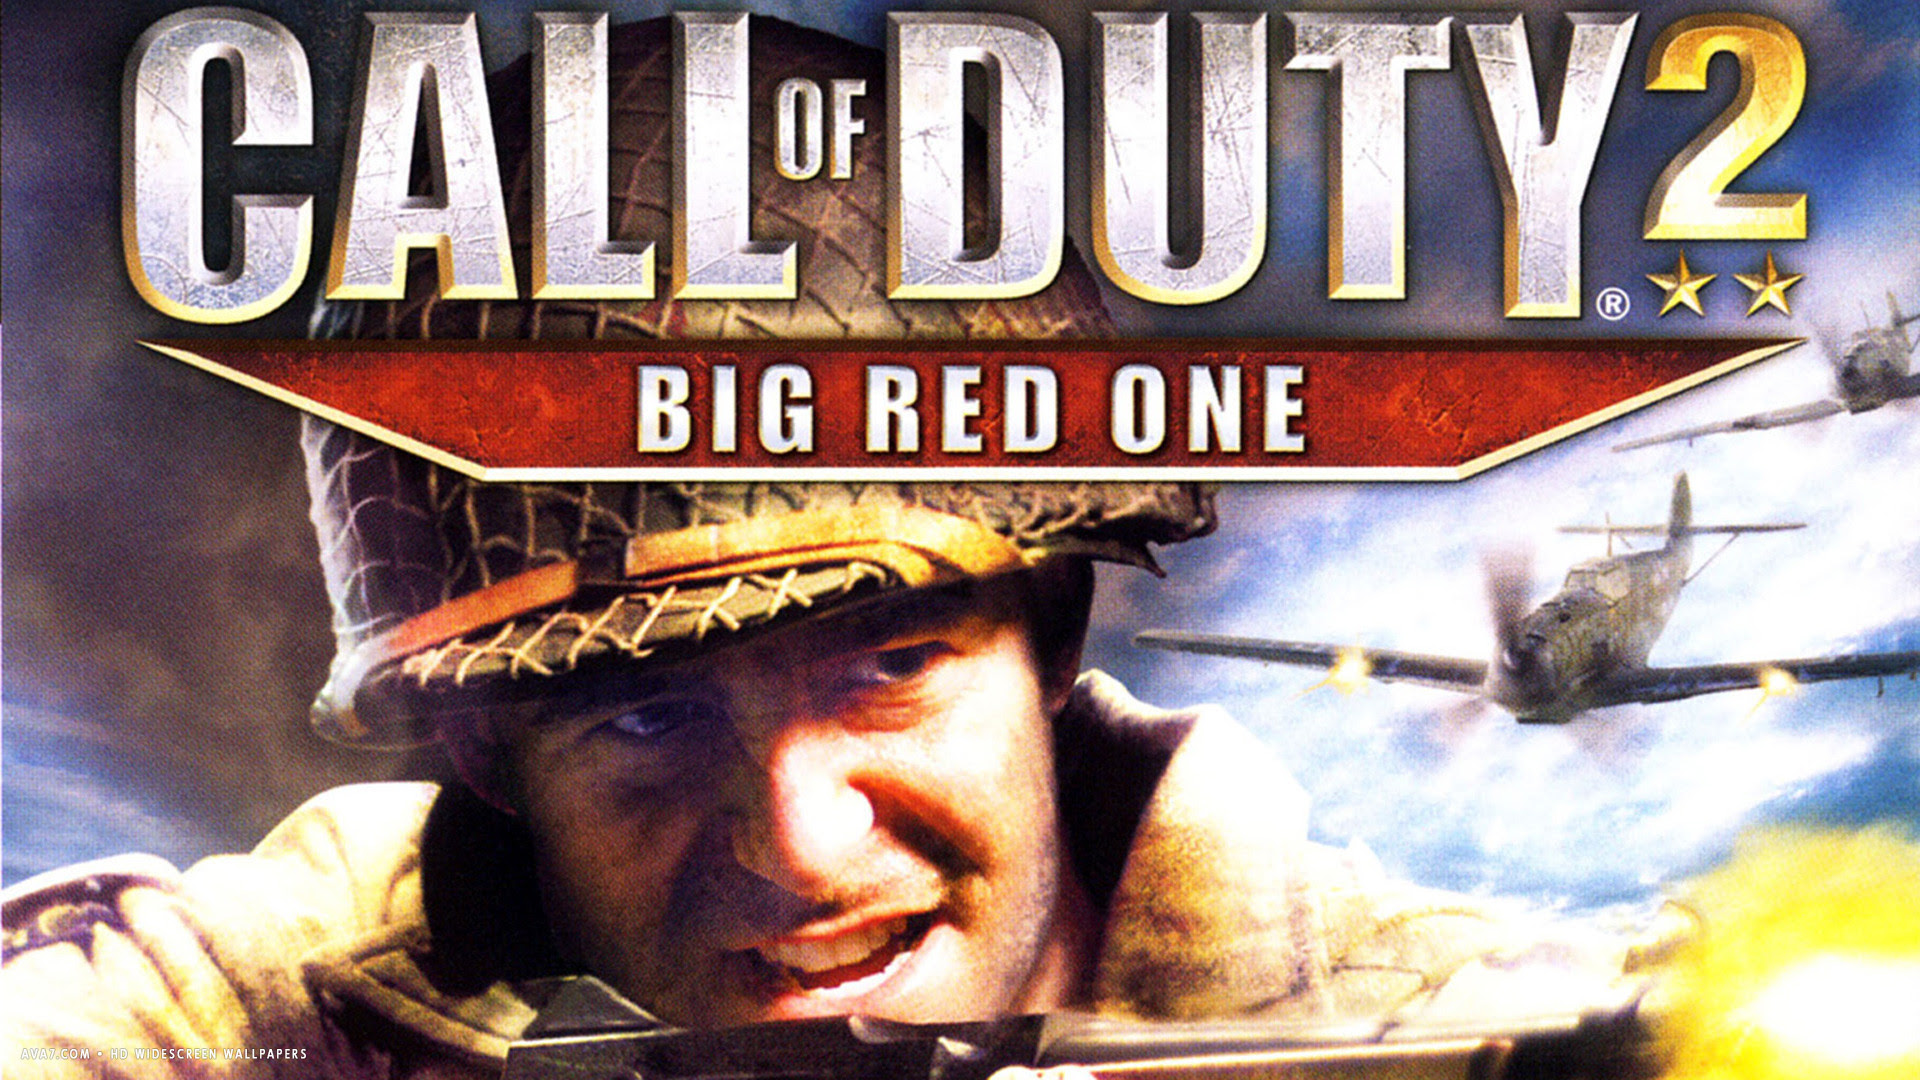 Call Of Duty 2 Big Red One Game Hd Widescreen Wallpaper Games